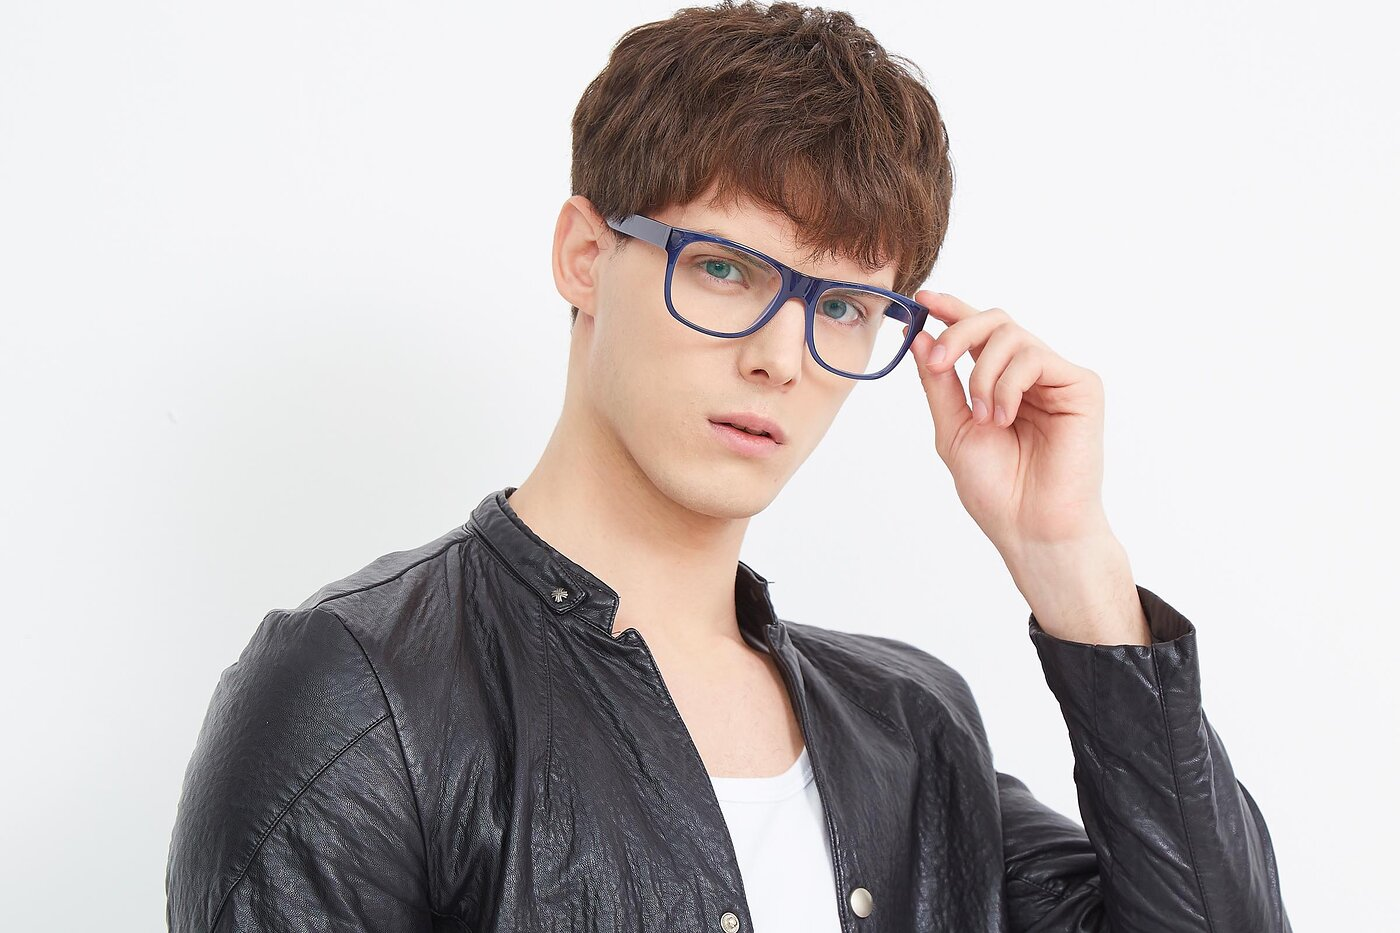 Blue Oversized Geek-Chic Shield Eyeglasses